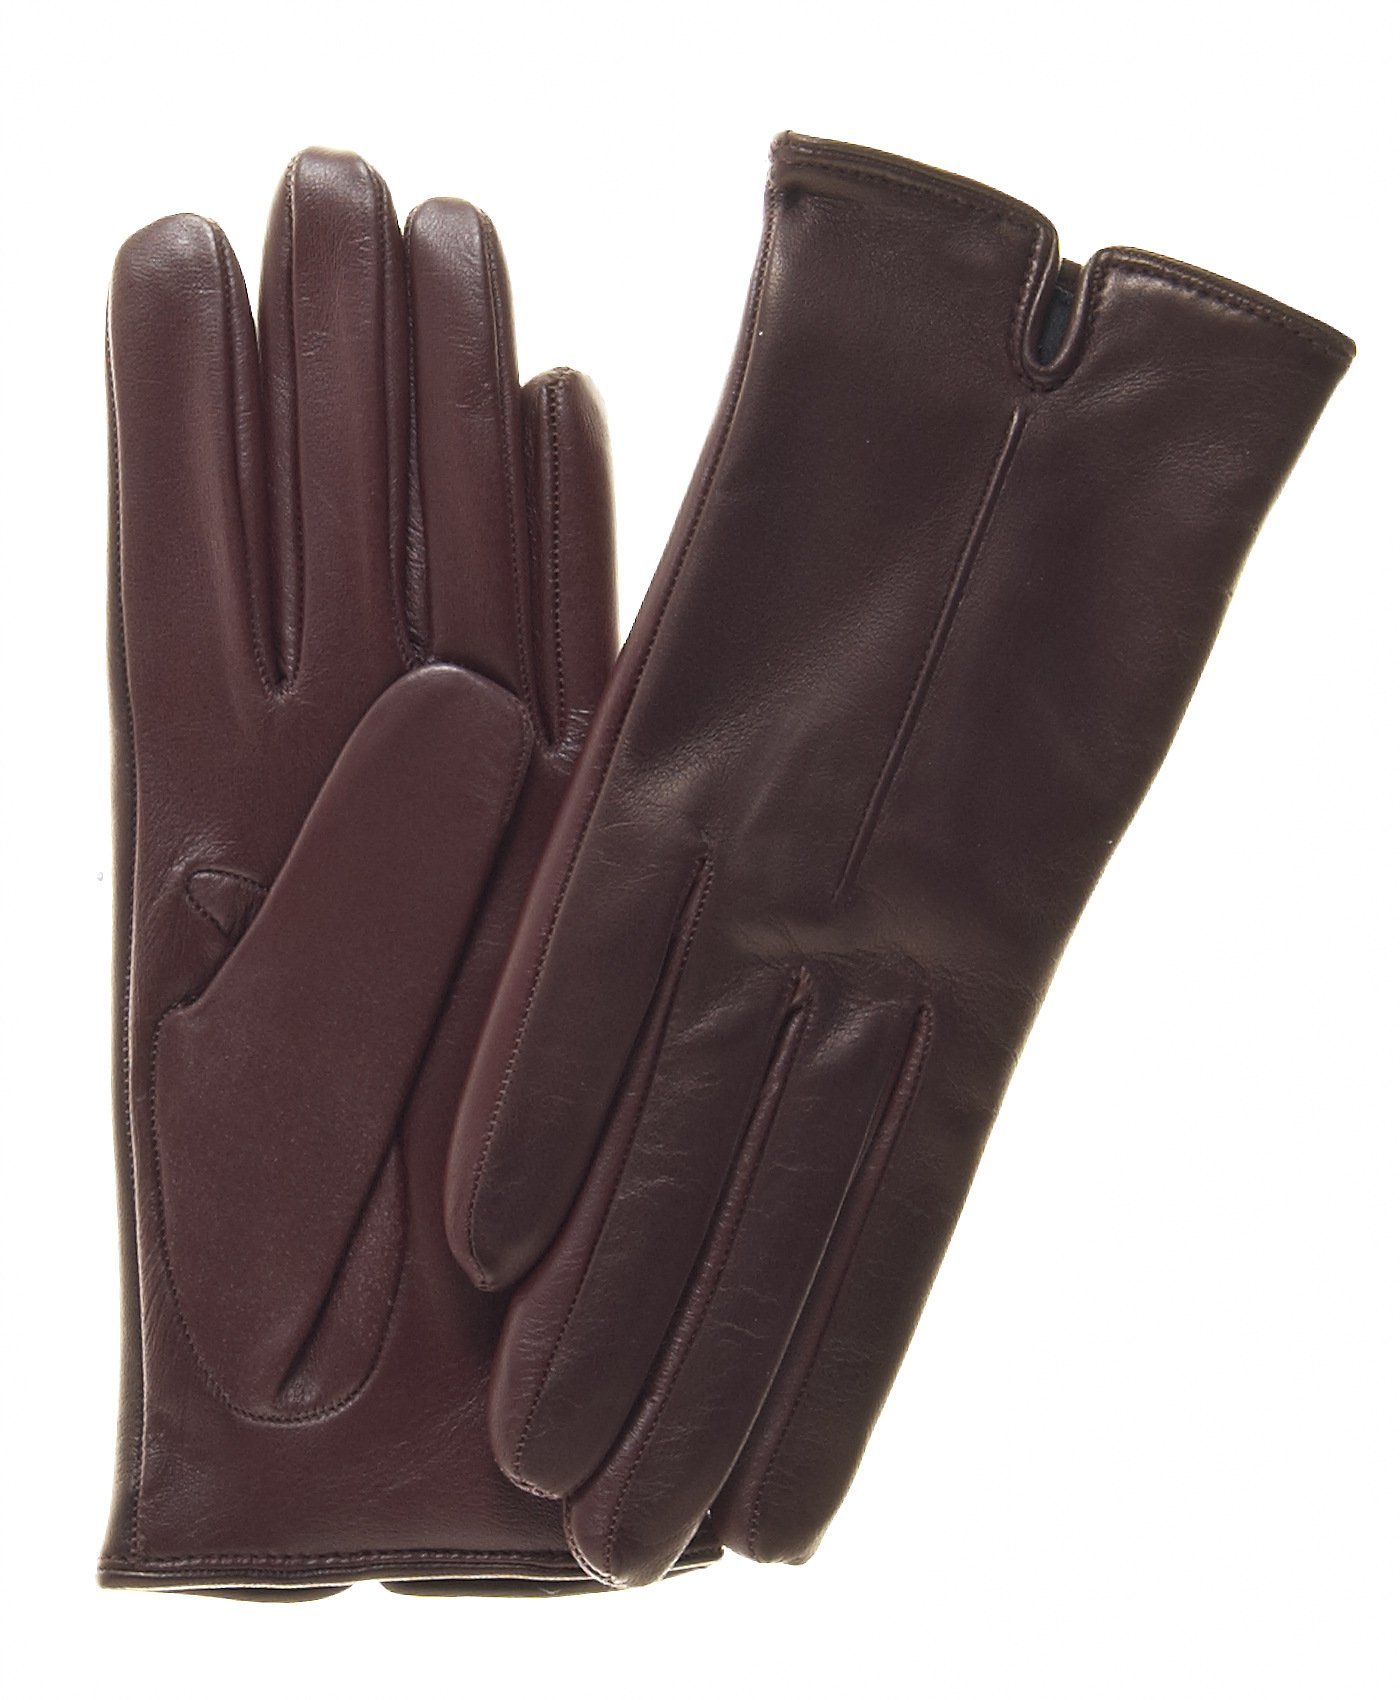 Fratelli Orsini Women's Touchscreen Italian Cashmere Lined Leather Gloves Size 6 1/2 Color Oxblood by Fratelli Orsini